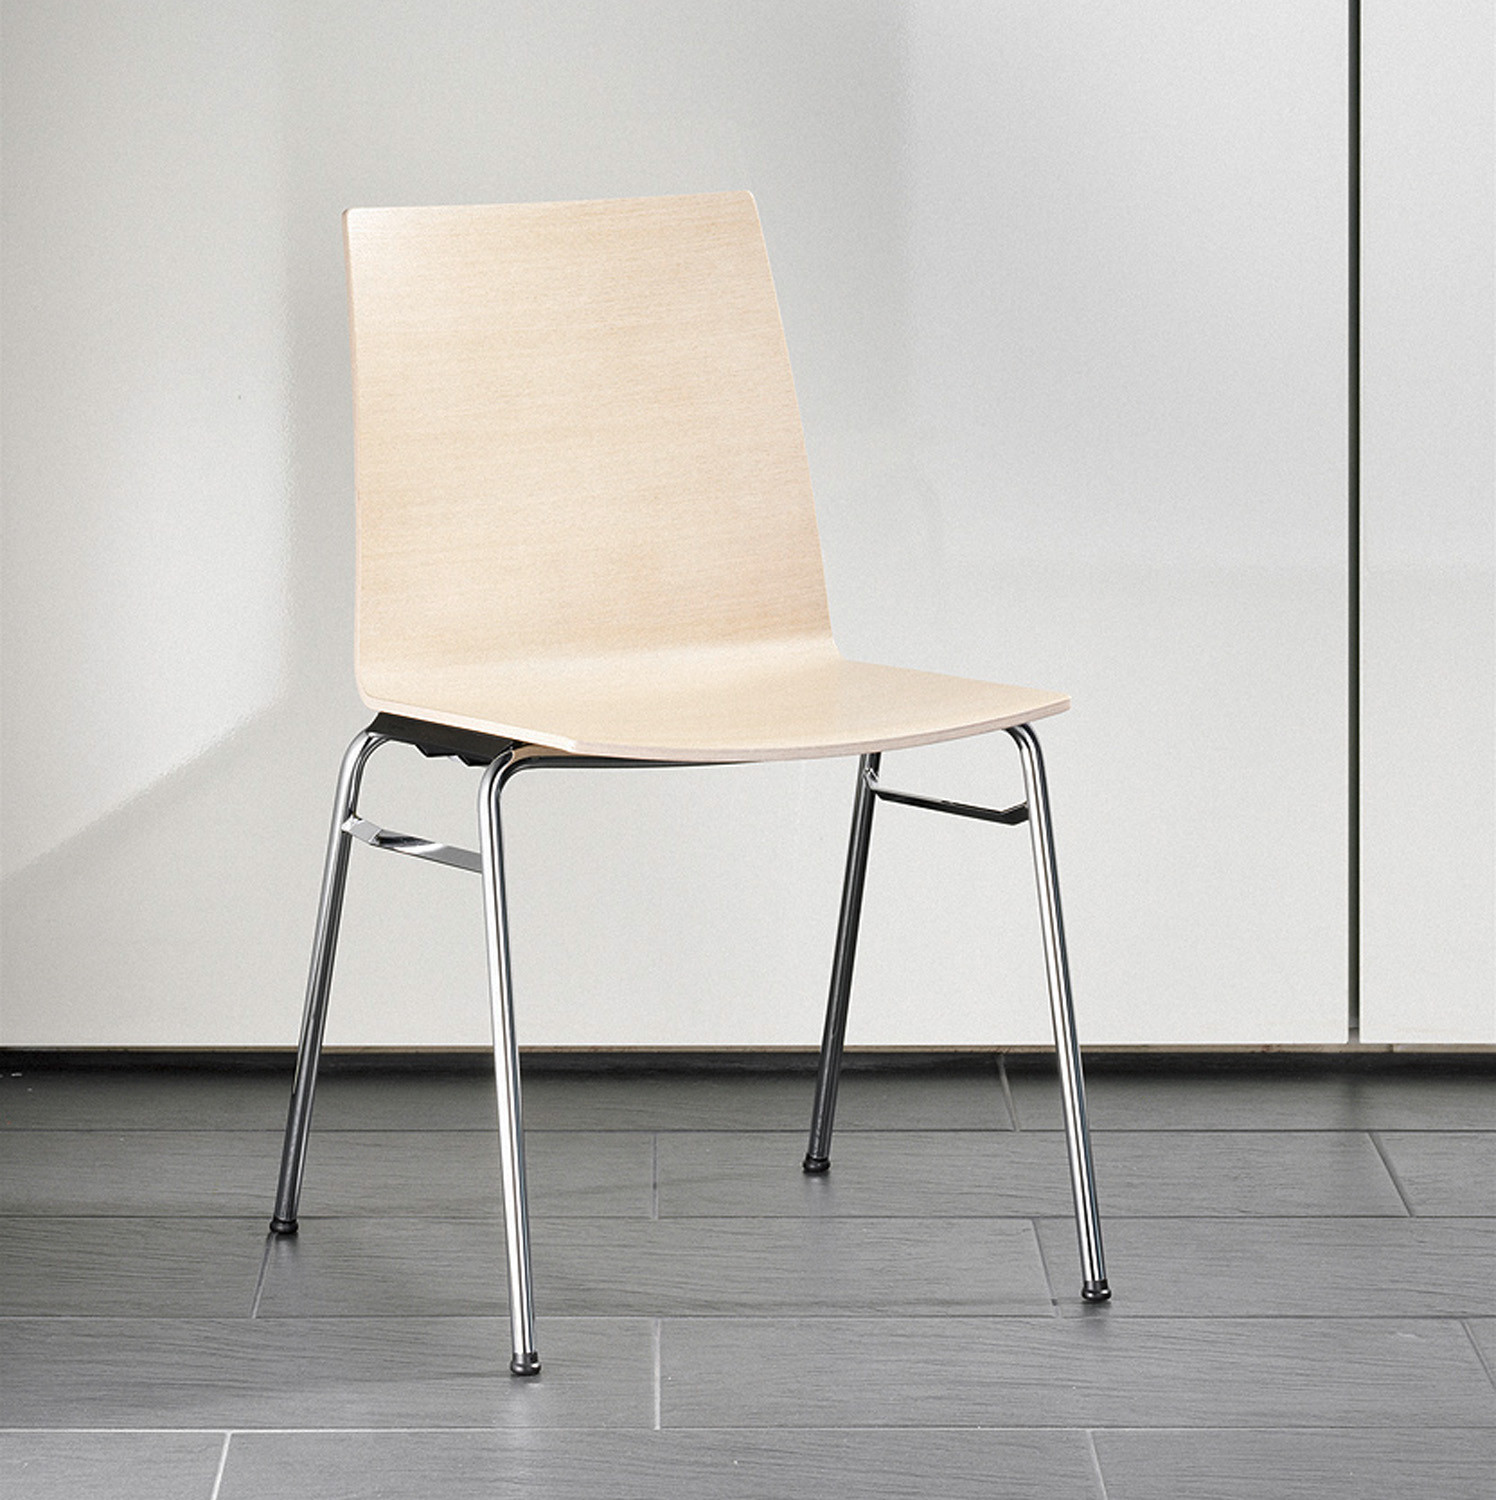 Update Stackable Chair from Wiesner Hager